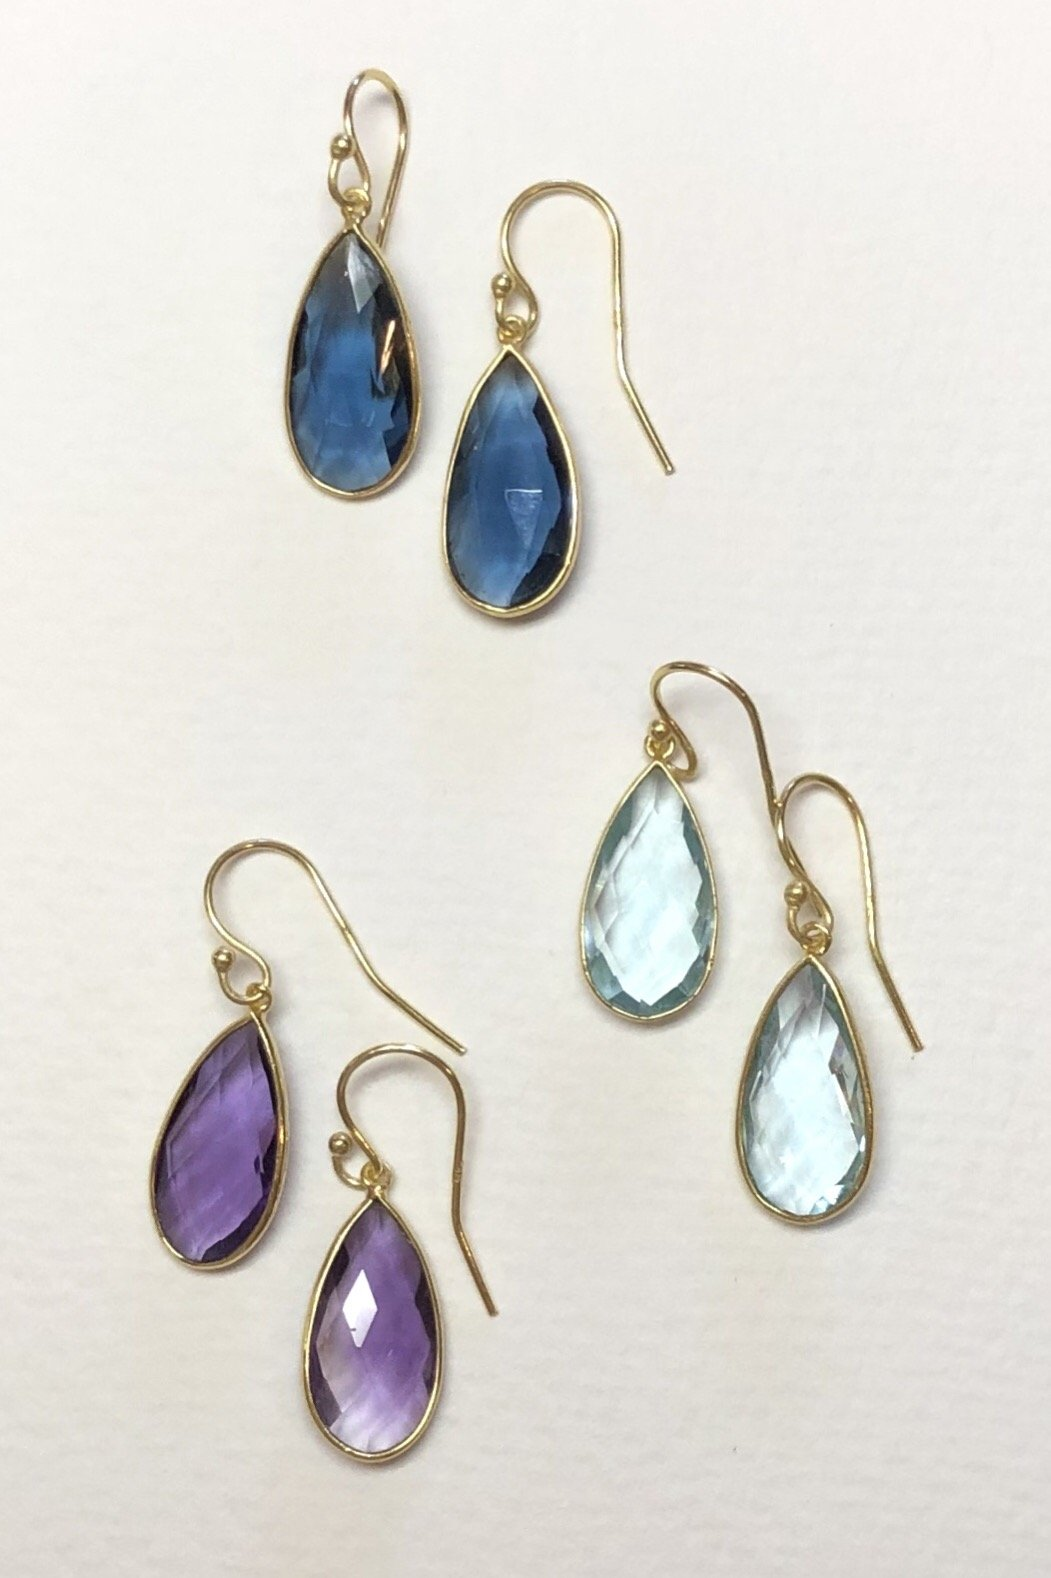 teardrop earrings made from montana blue agate and gold vermeil